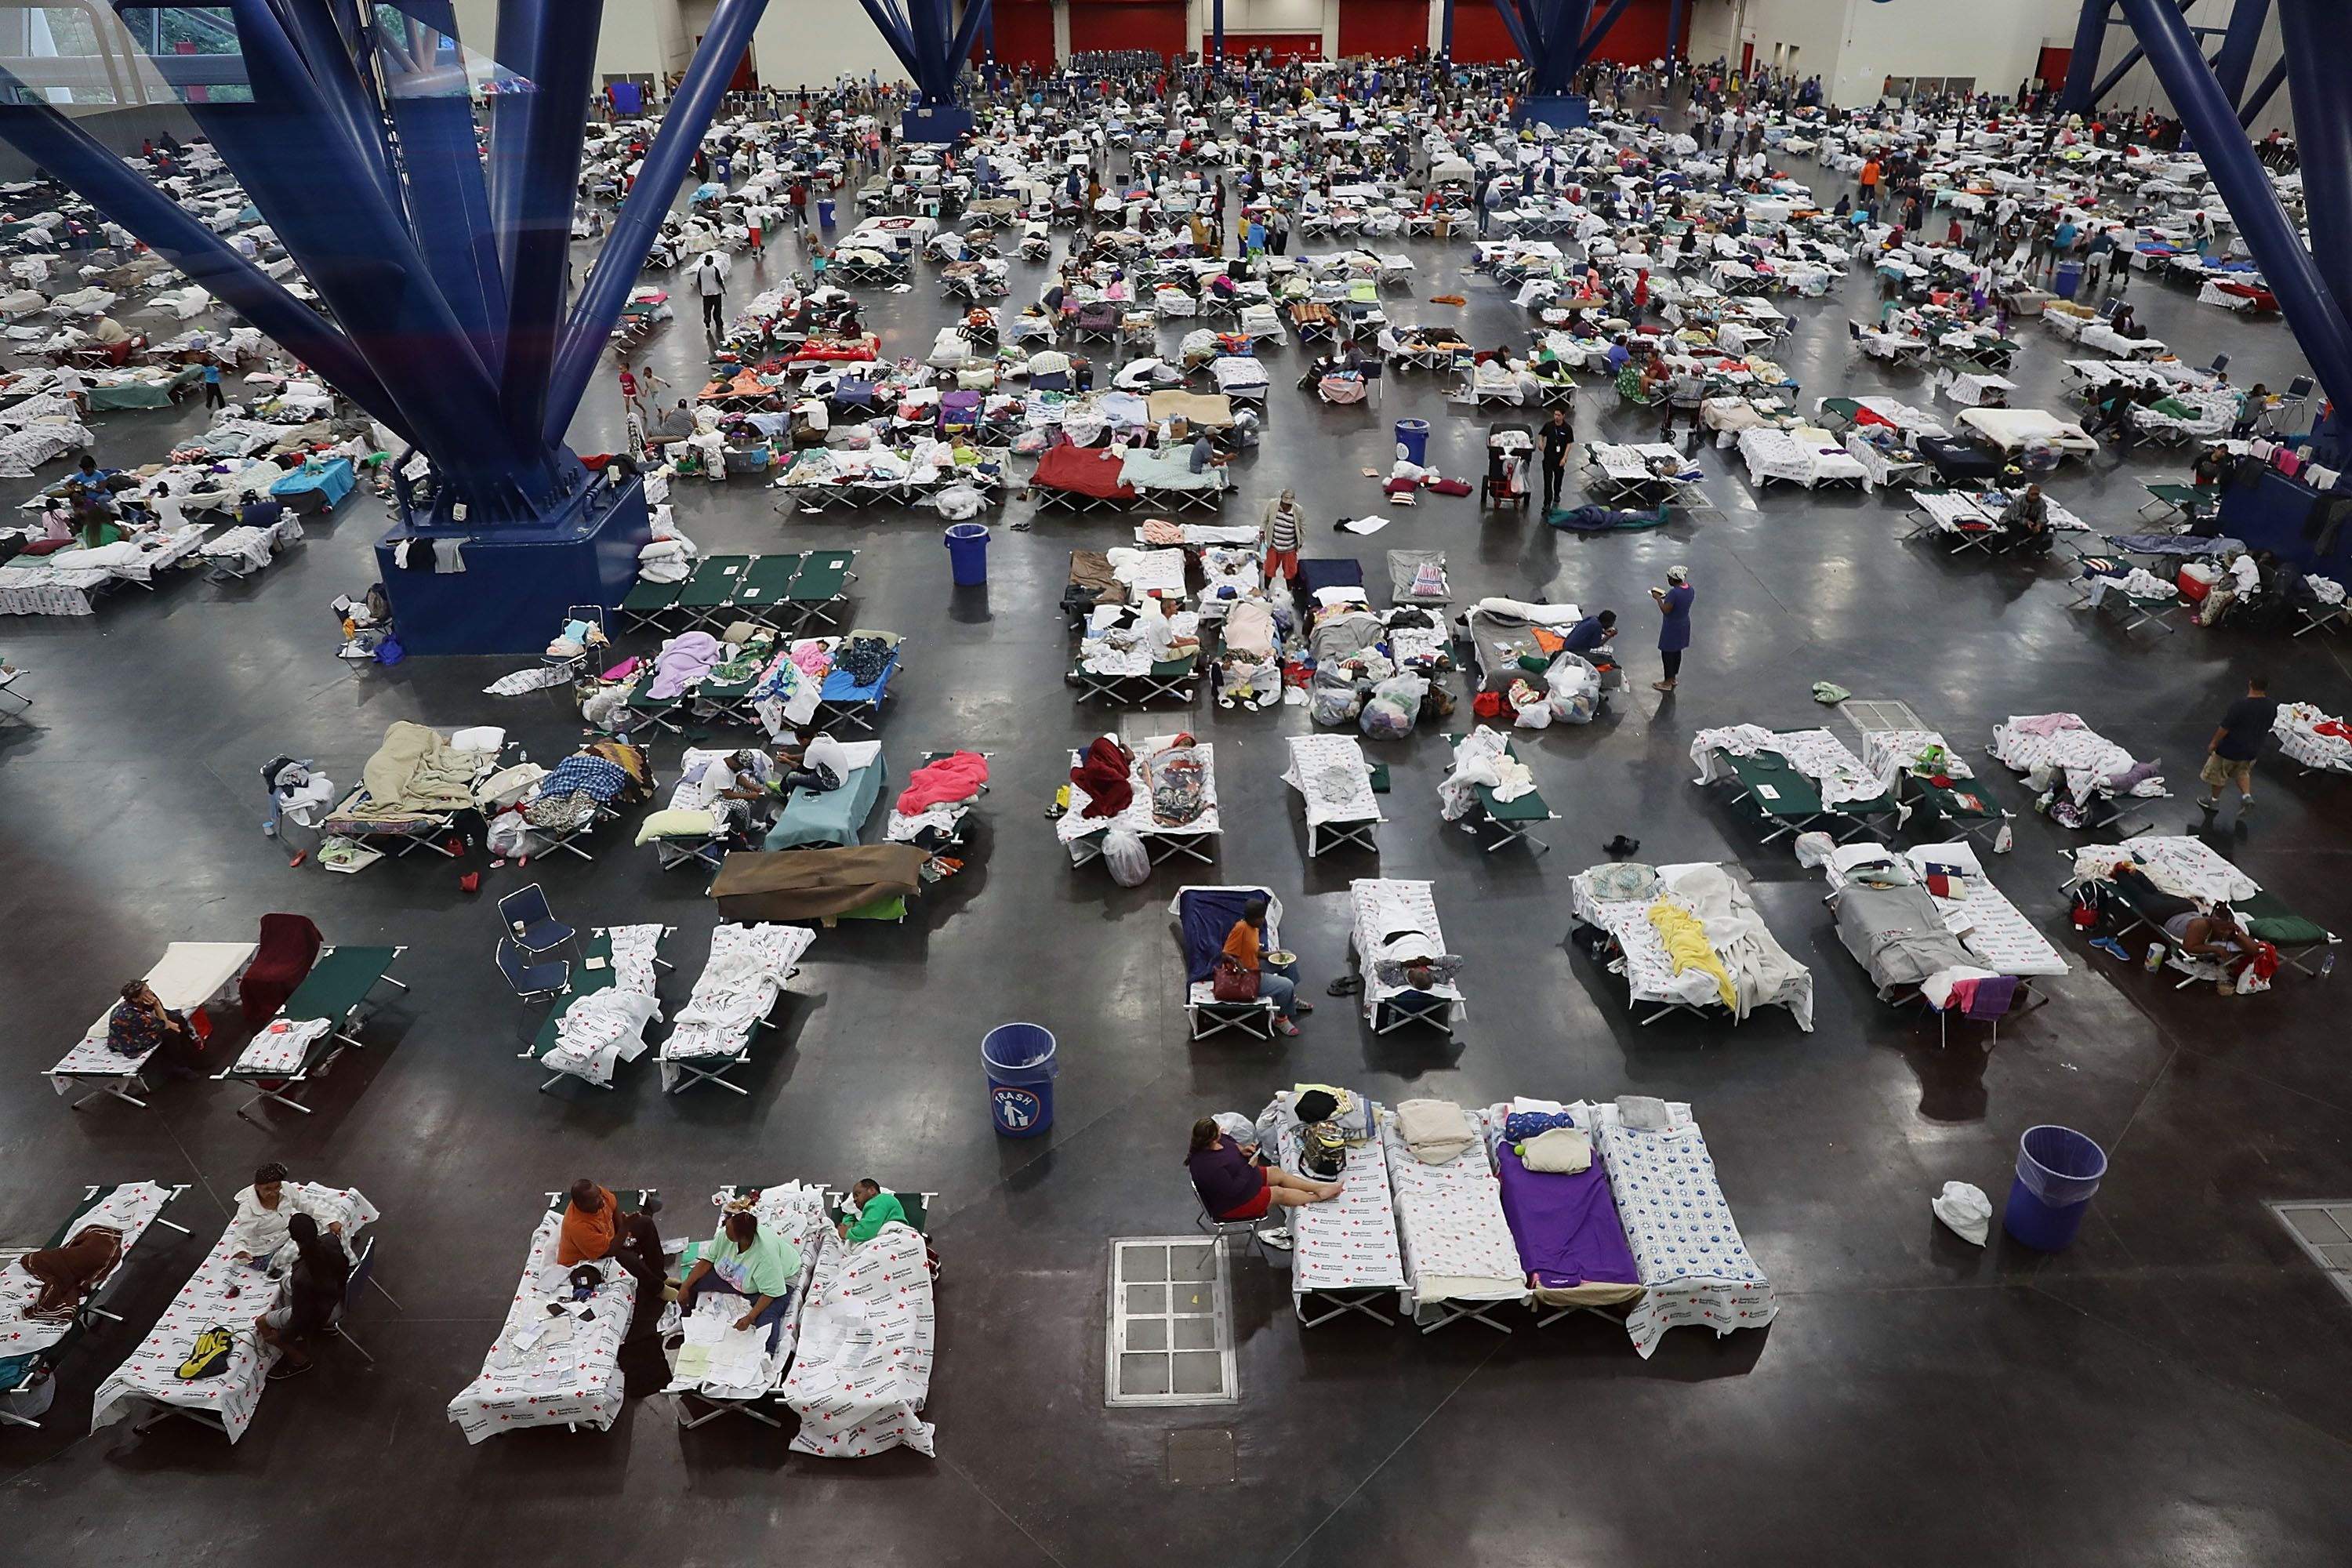 Give blood after Hurricane Florence